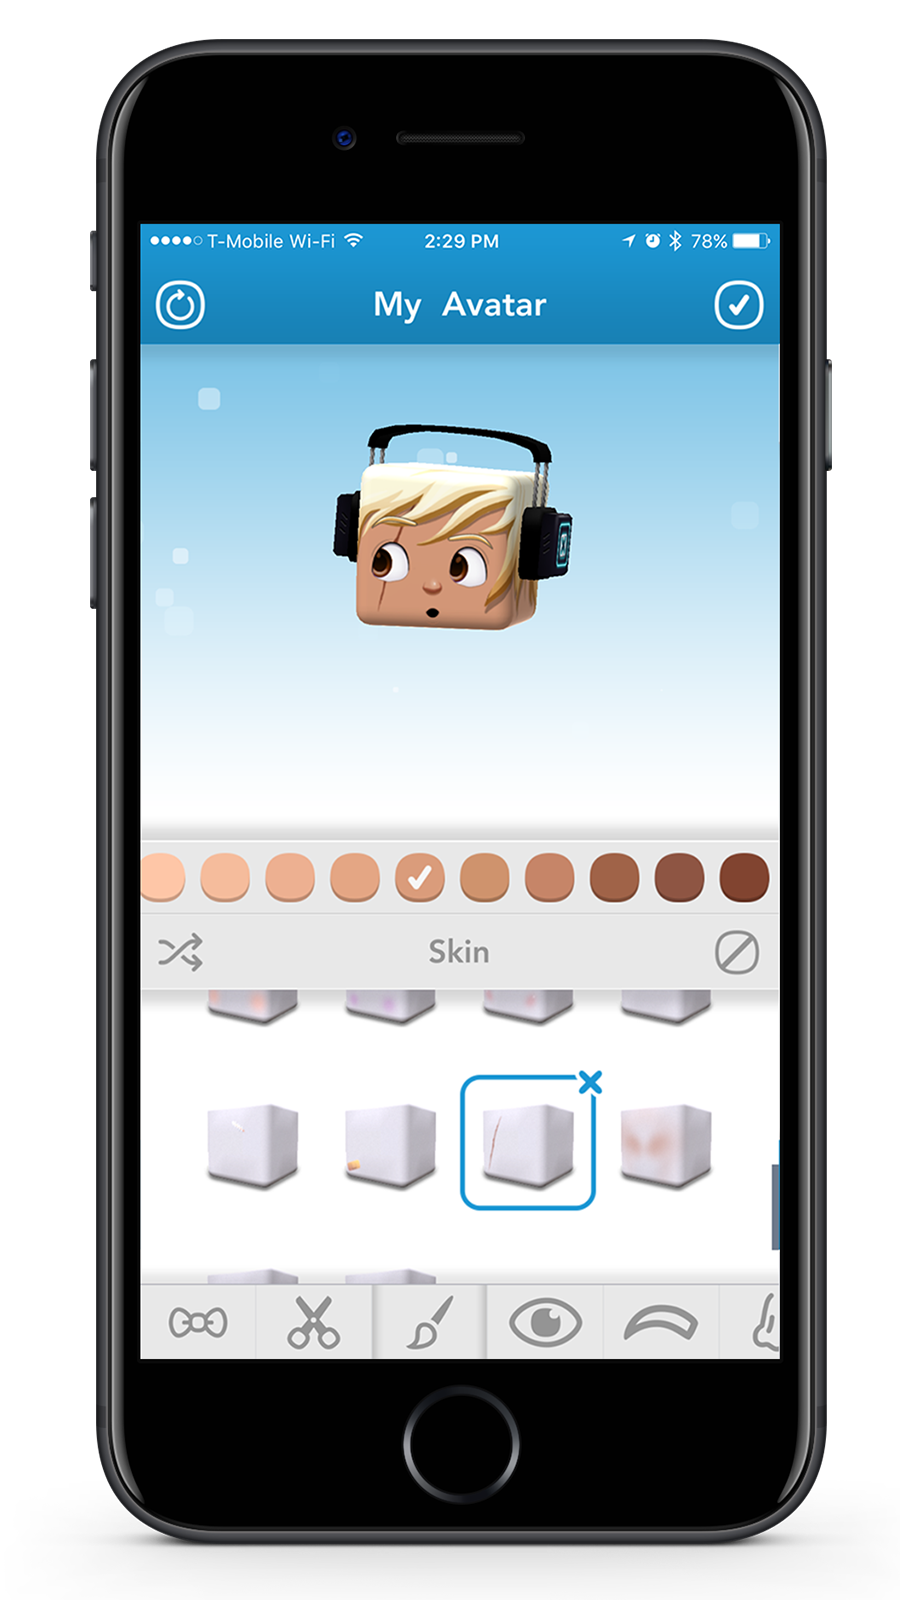 Avatar Editor - Users can edit their avatar's appearance and wear fun and expressive accessories and costumes. Quick action buttons allow users to reset or remove avatar features.